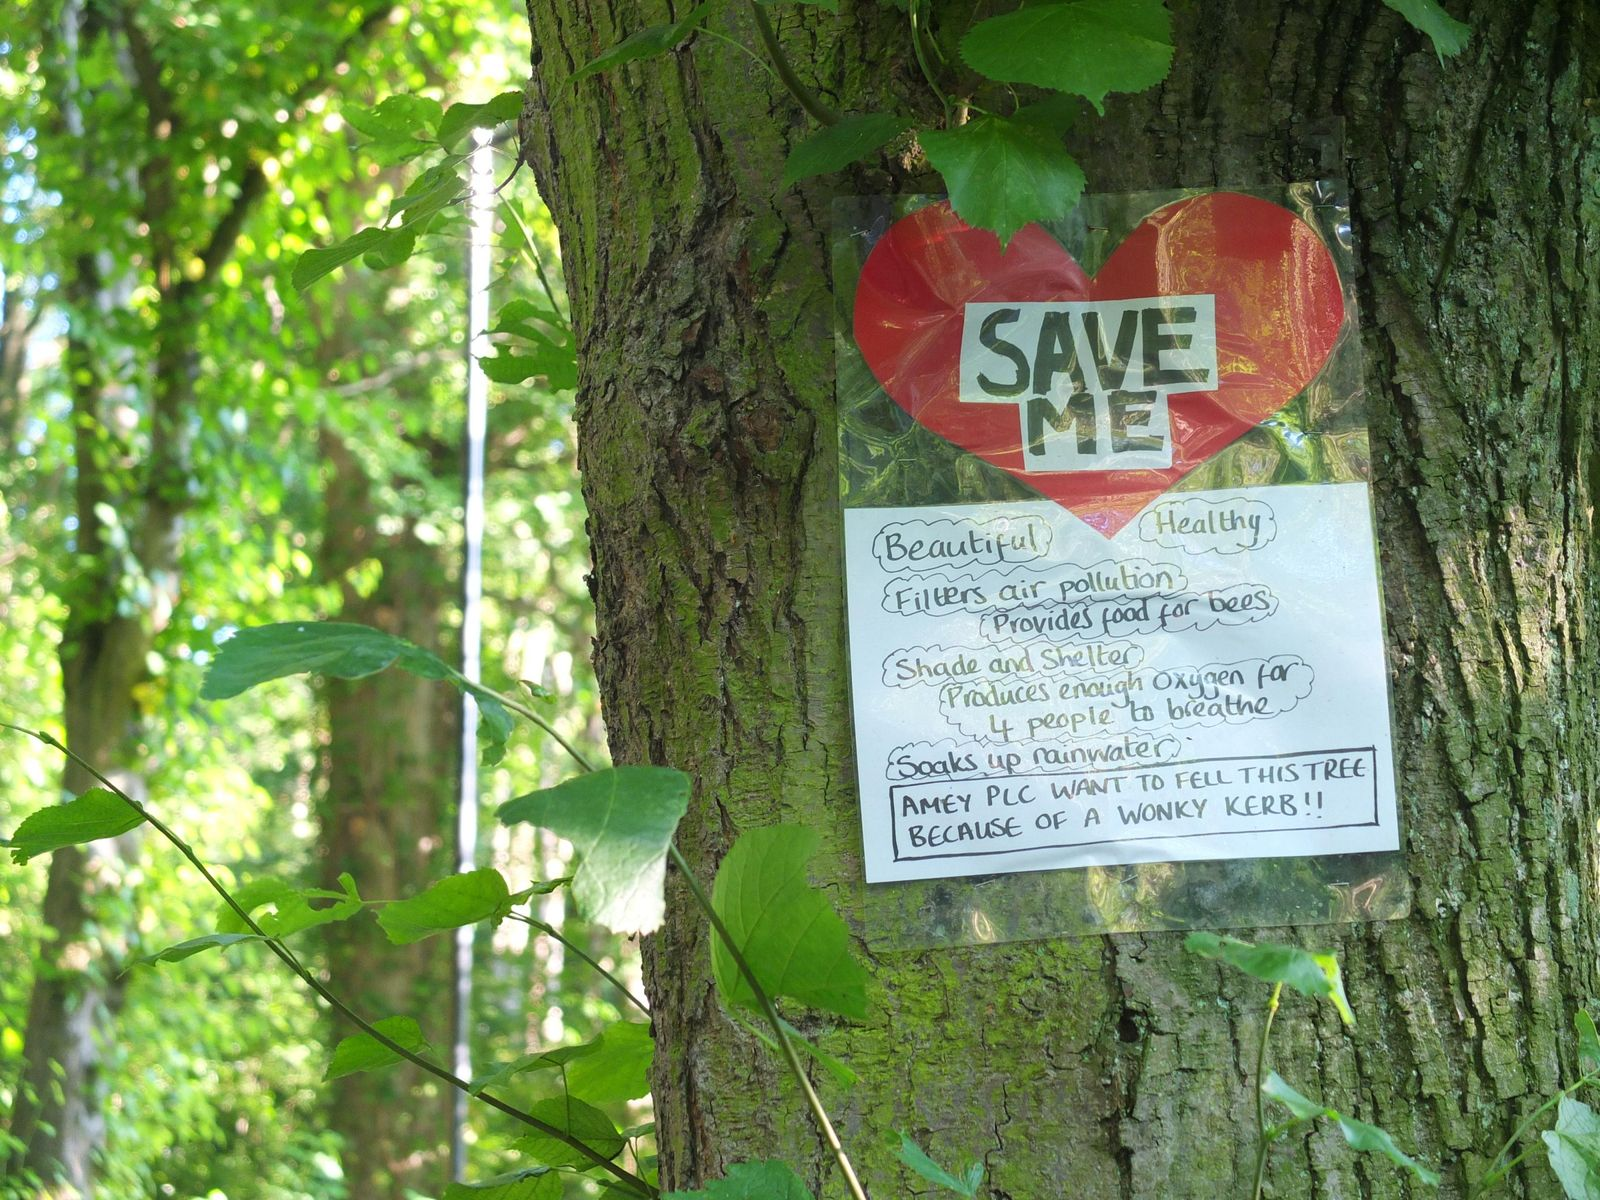 A protest sign adorns a tree on Rivelin Valley Road, Sheffield, 2017. Justified as part of infrastructure improvements ...